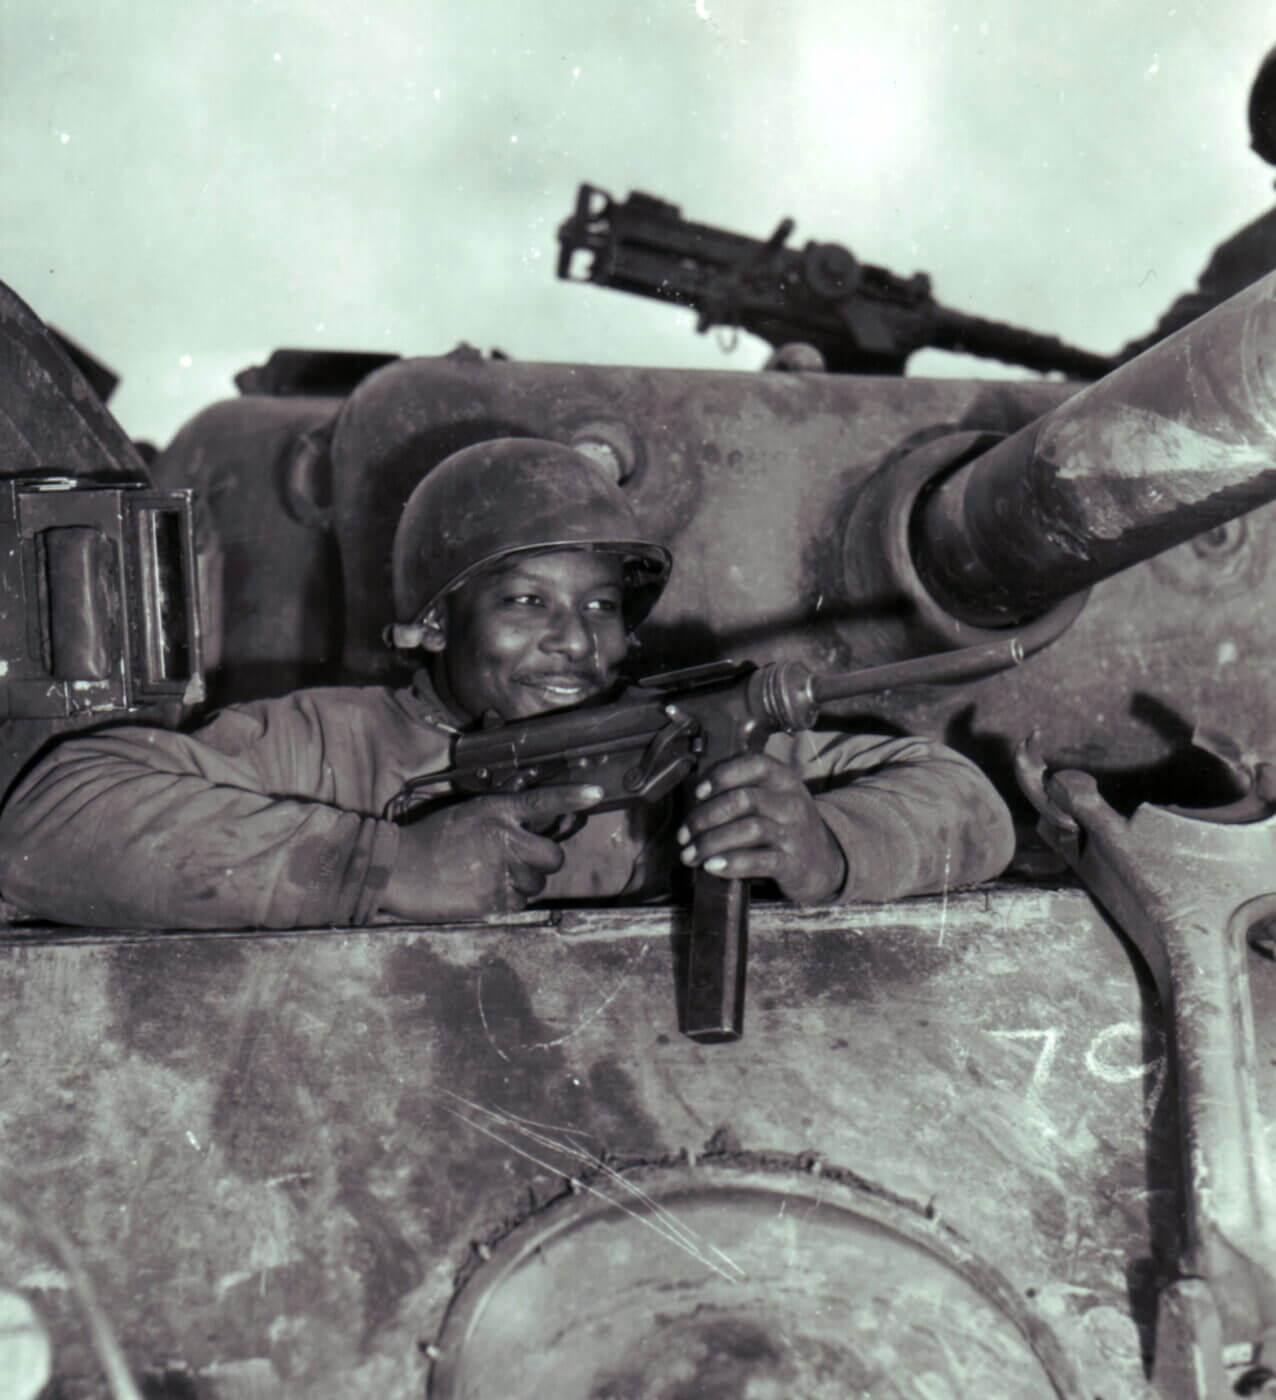 Soldier in tank with M3 grease gun